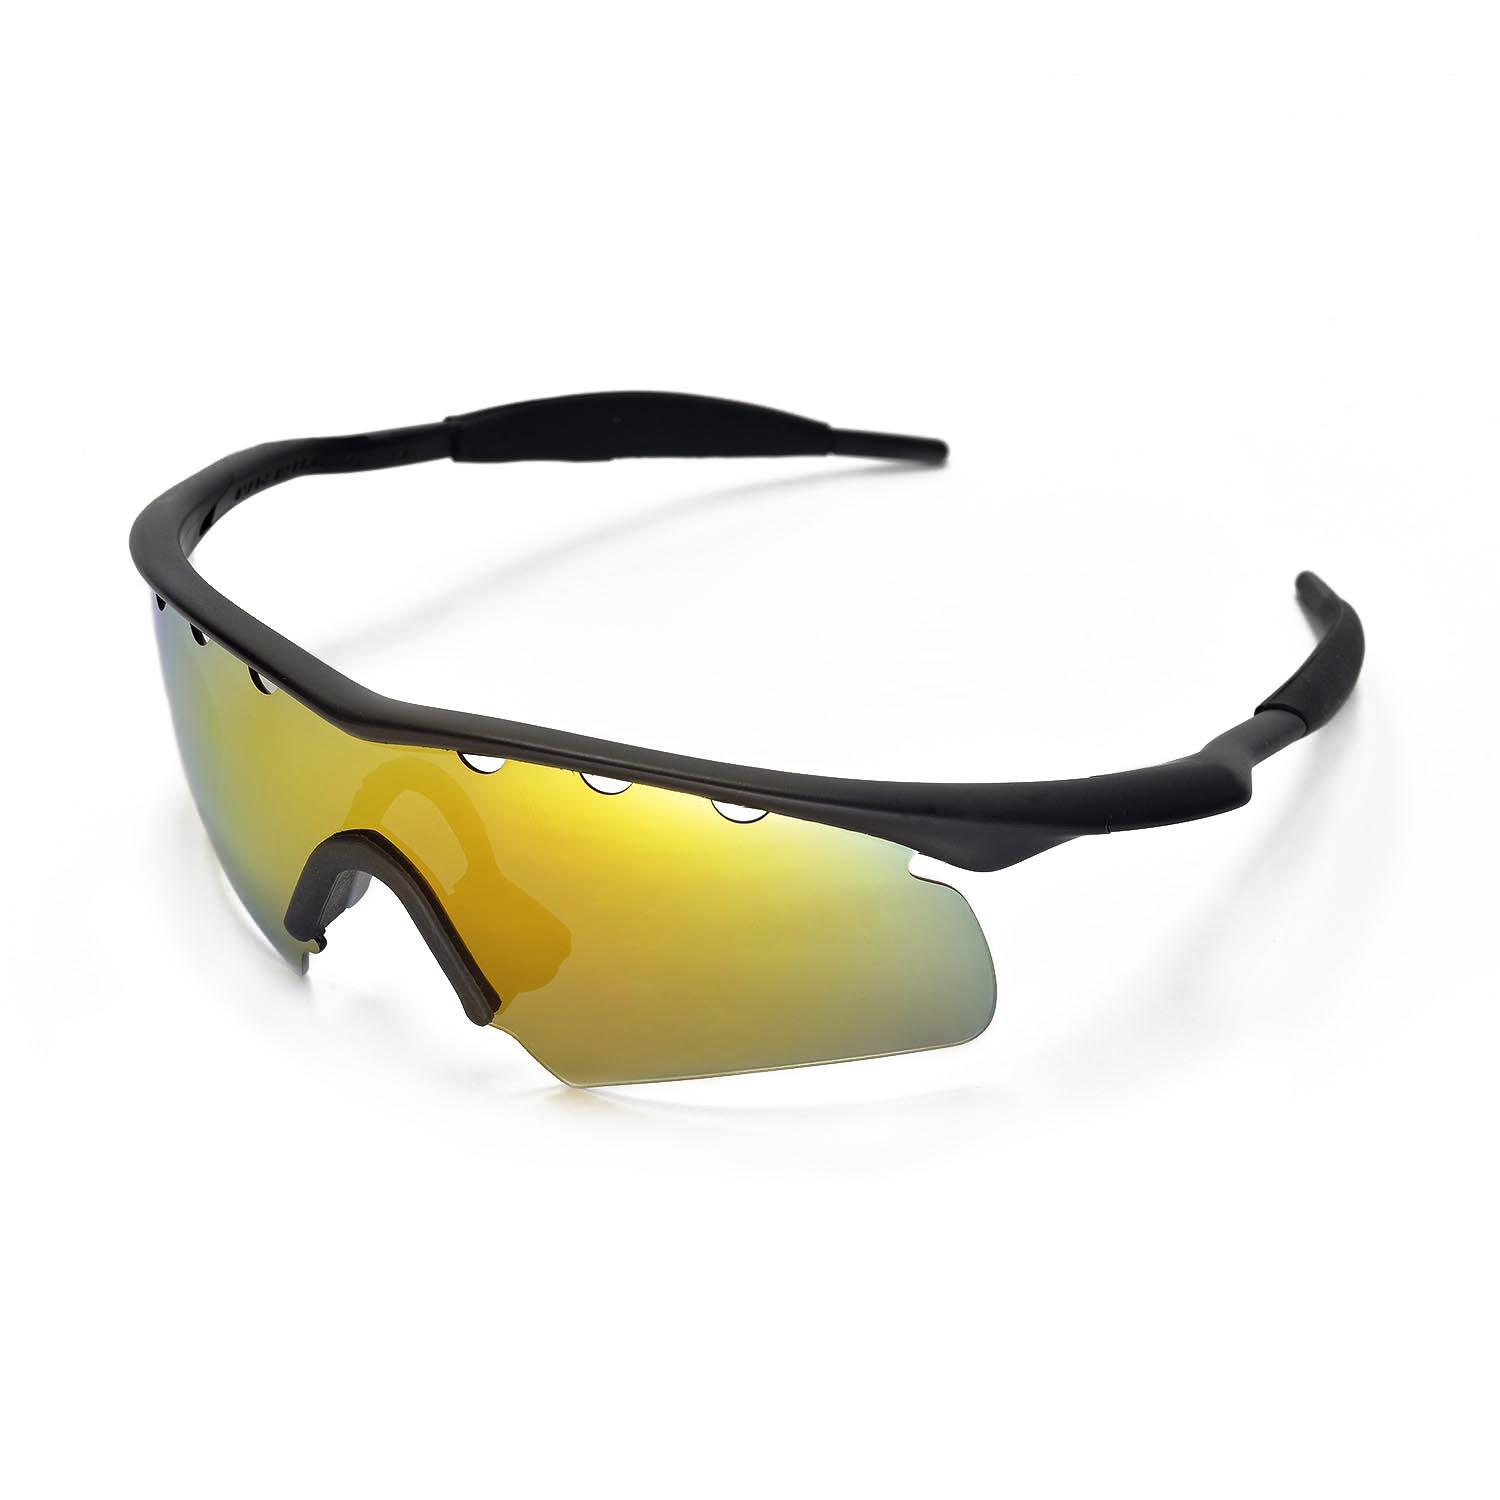 8c324aff6a Details about New WL Polarized 24K Gold Vented Replacement Lenses for Oakley  M Frame Hybrid